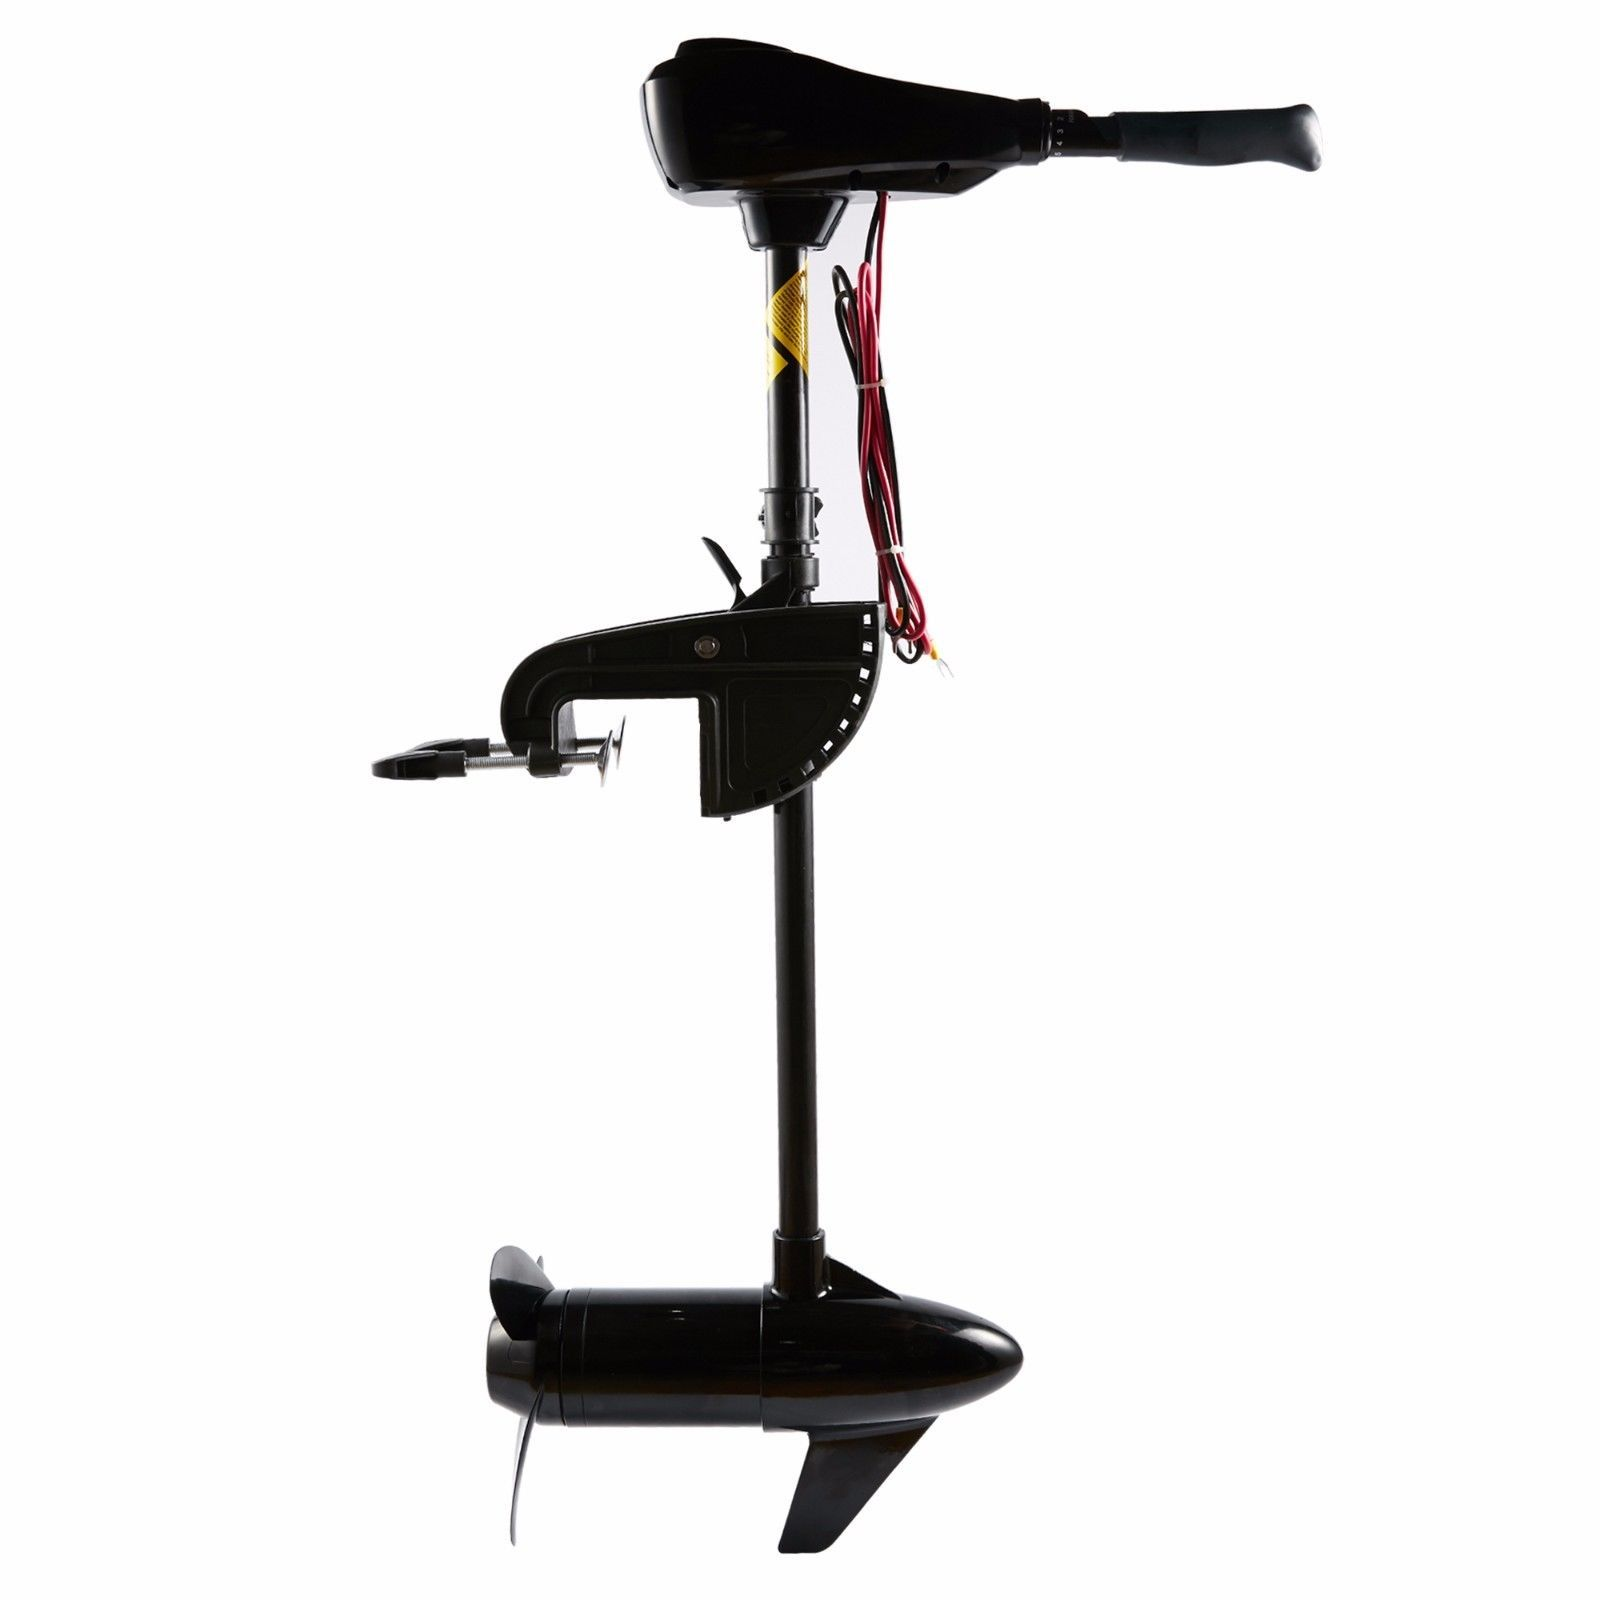 Cloud Mountain 55LBS Thrust Electric Trolling Motor for Fishing Boats